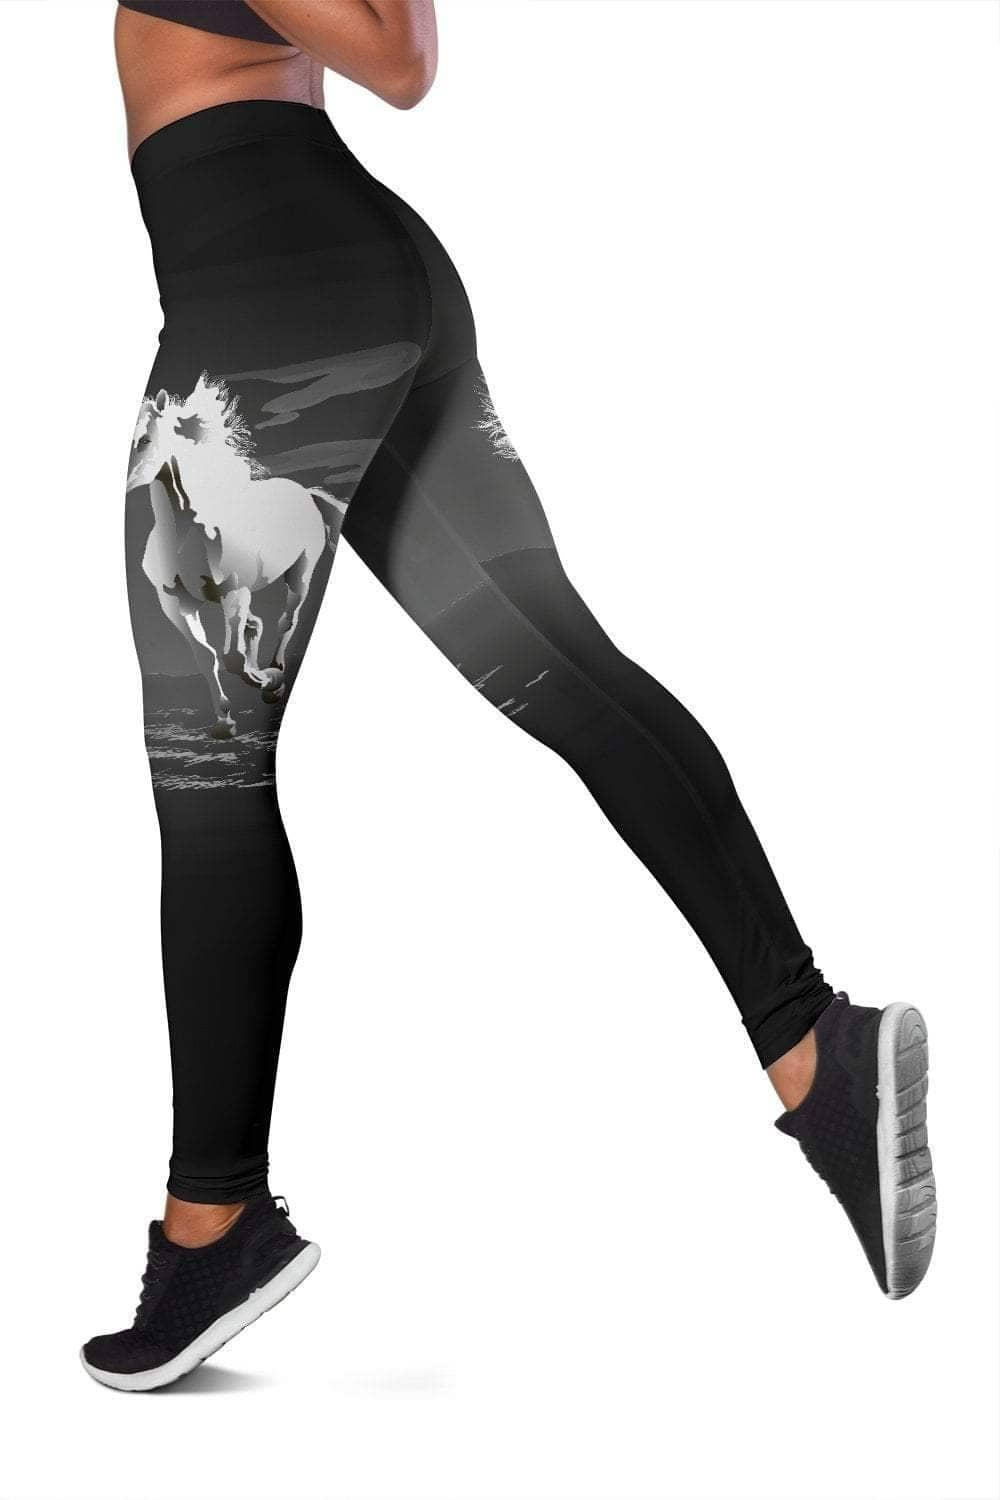 White Horse Leggings - Addicted City